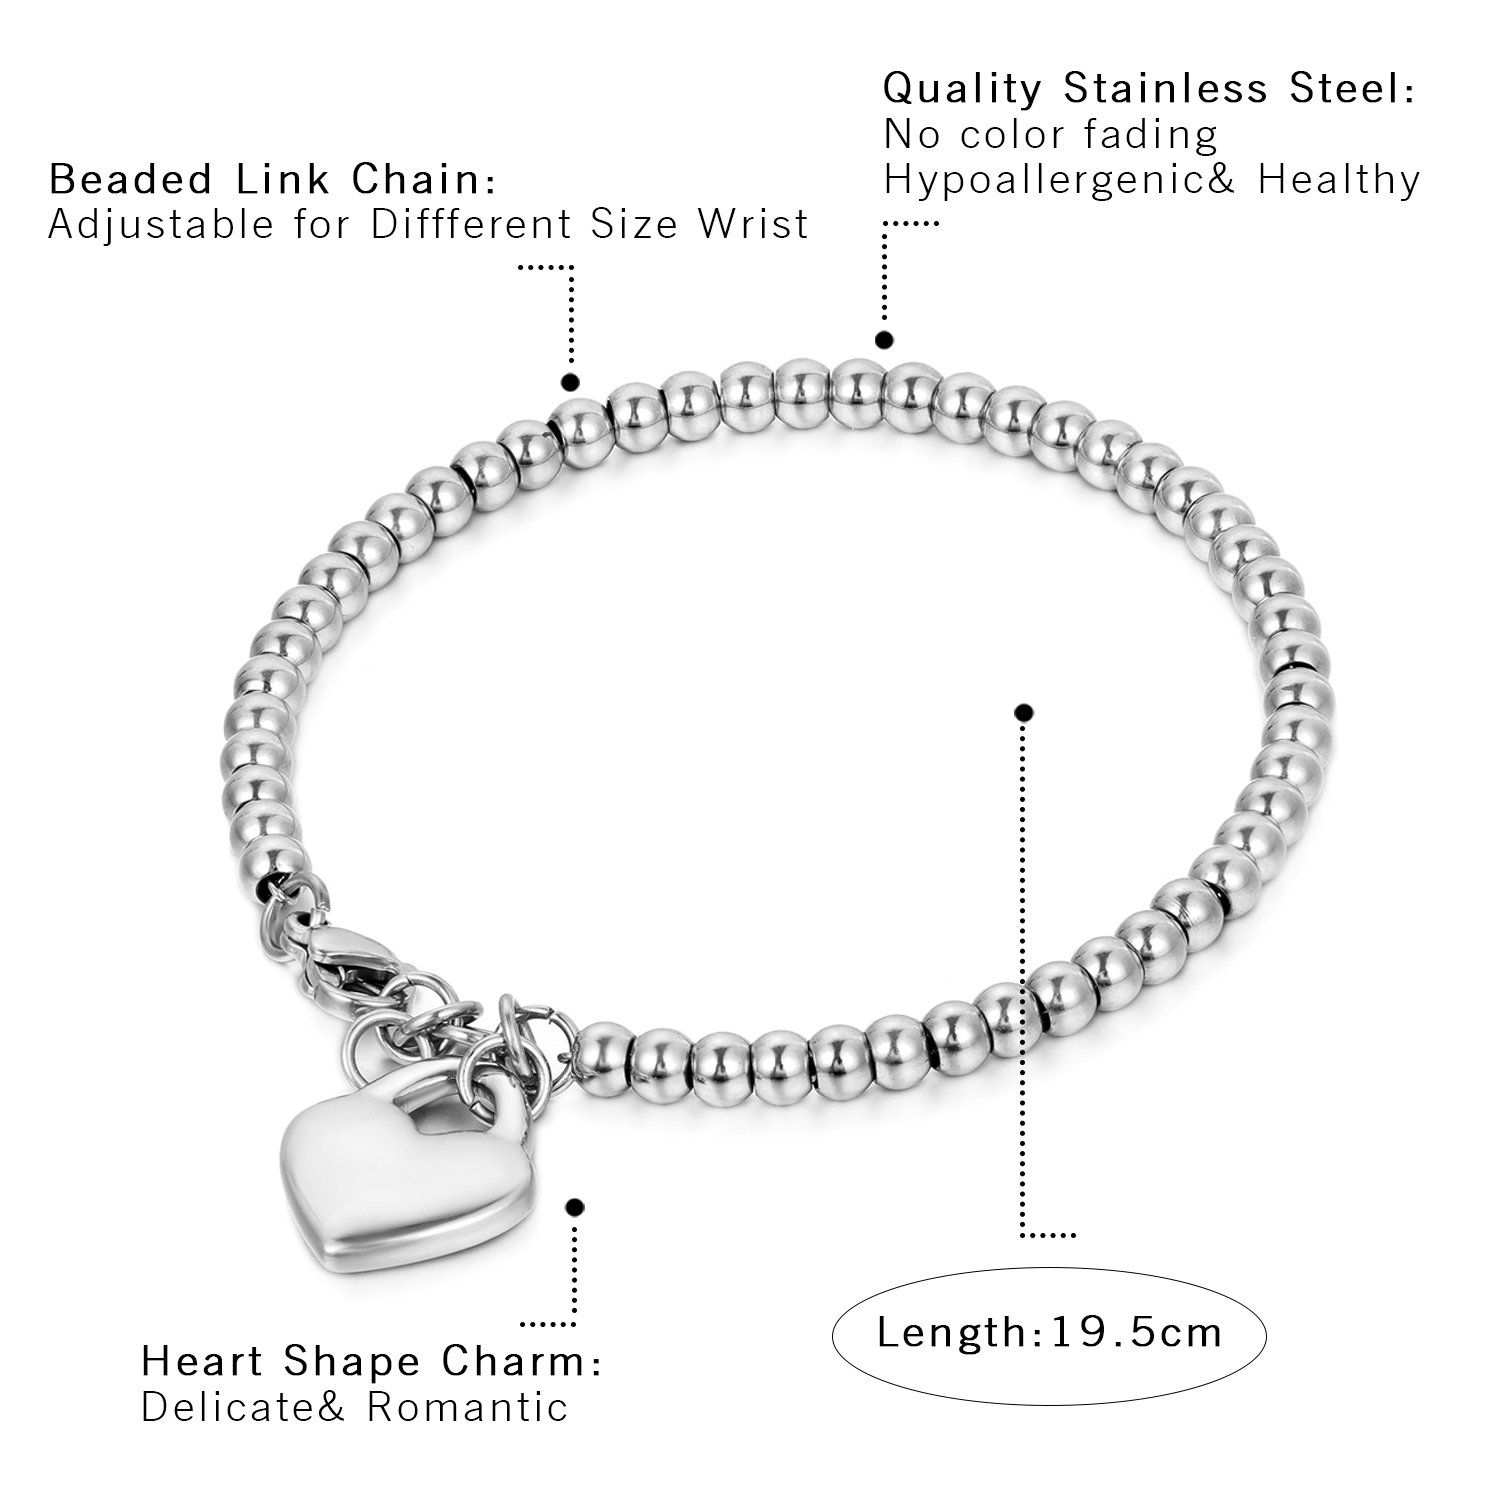 Cupimatch stainless steel love heart charm bracelet for women girls